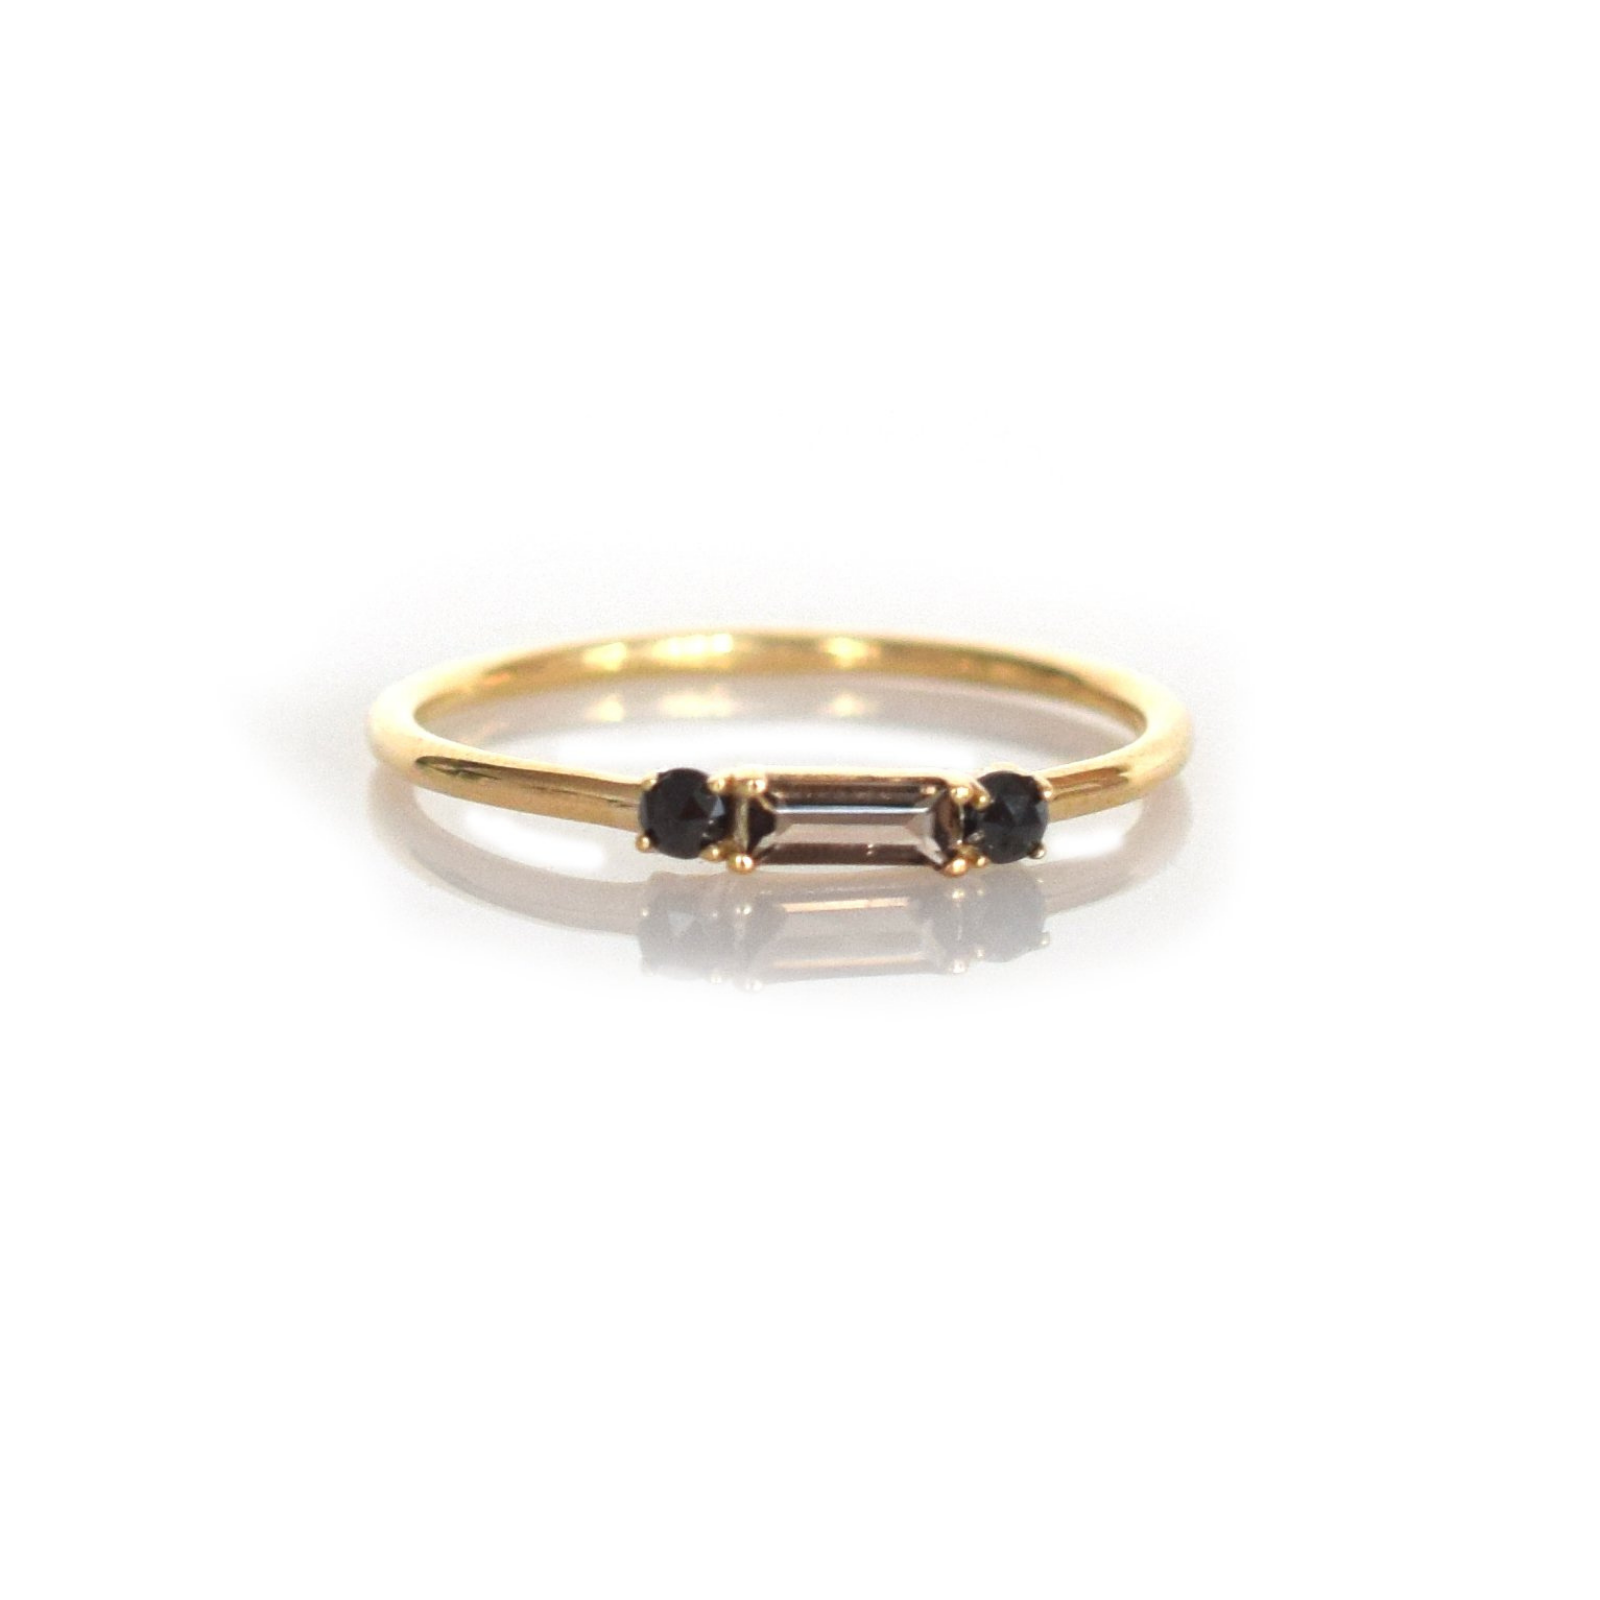 La Kaiser 14kt Gold Smoky Quartz & Black Diamond Baguette Crush Ring